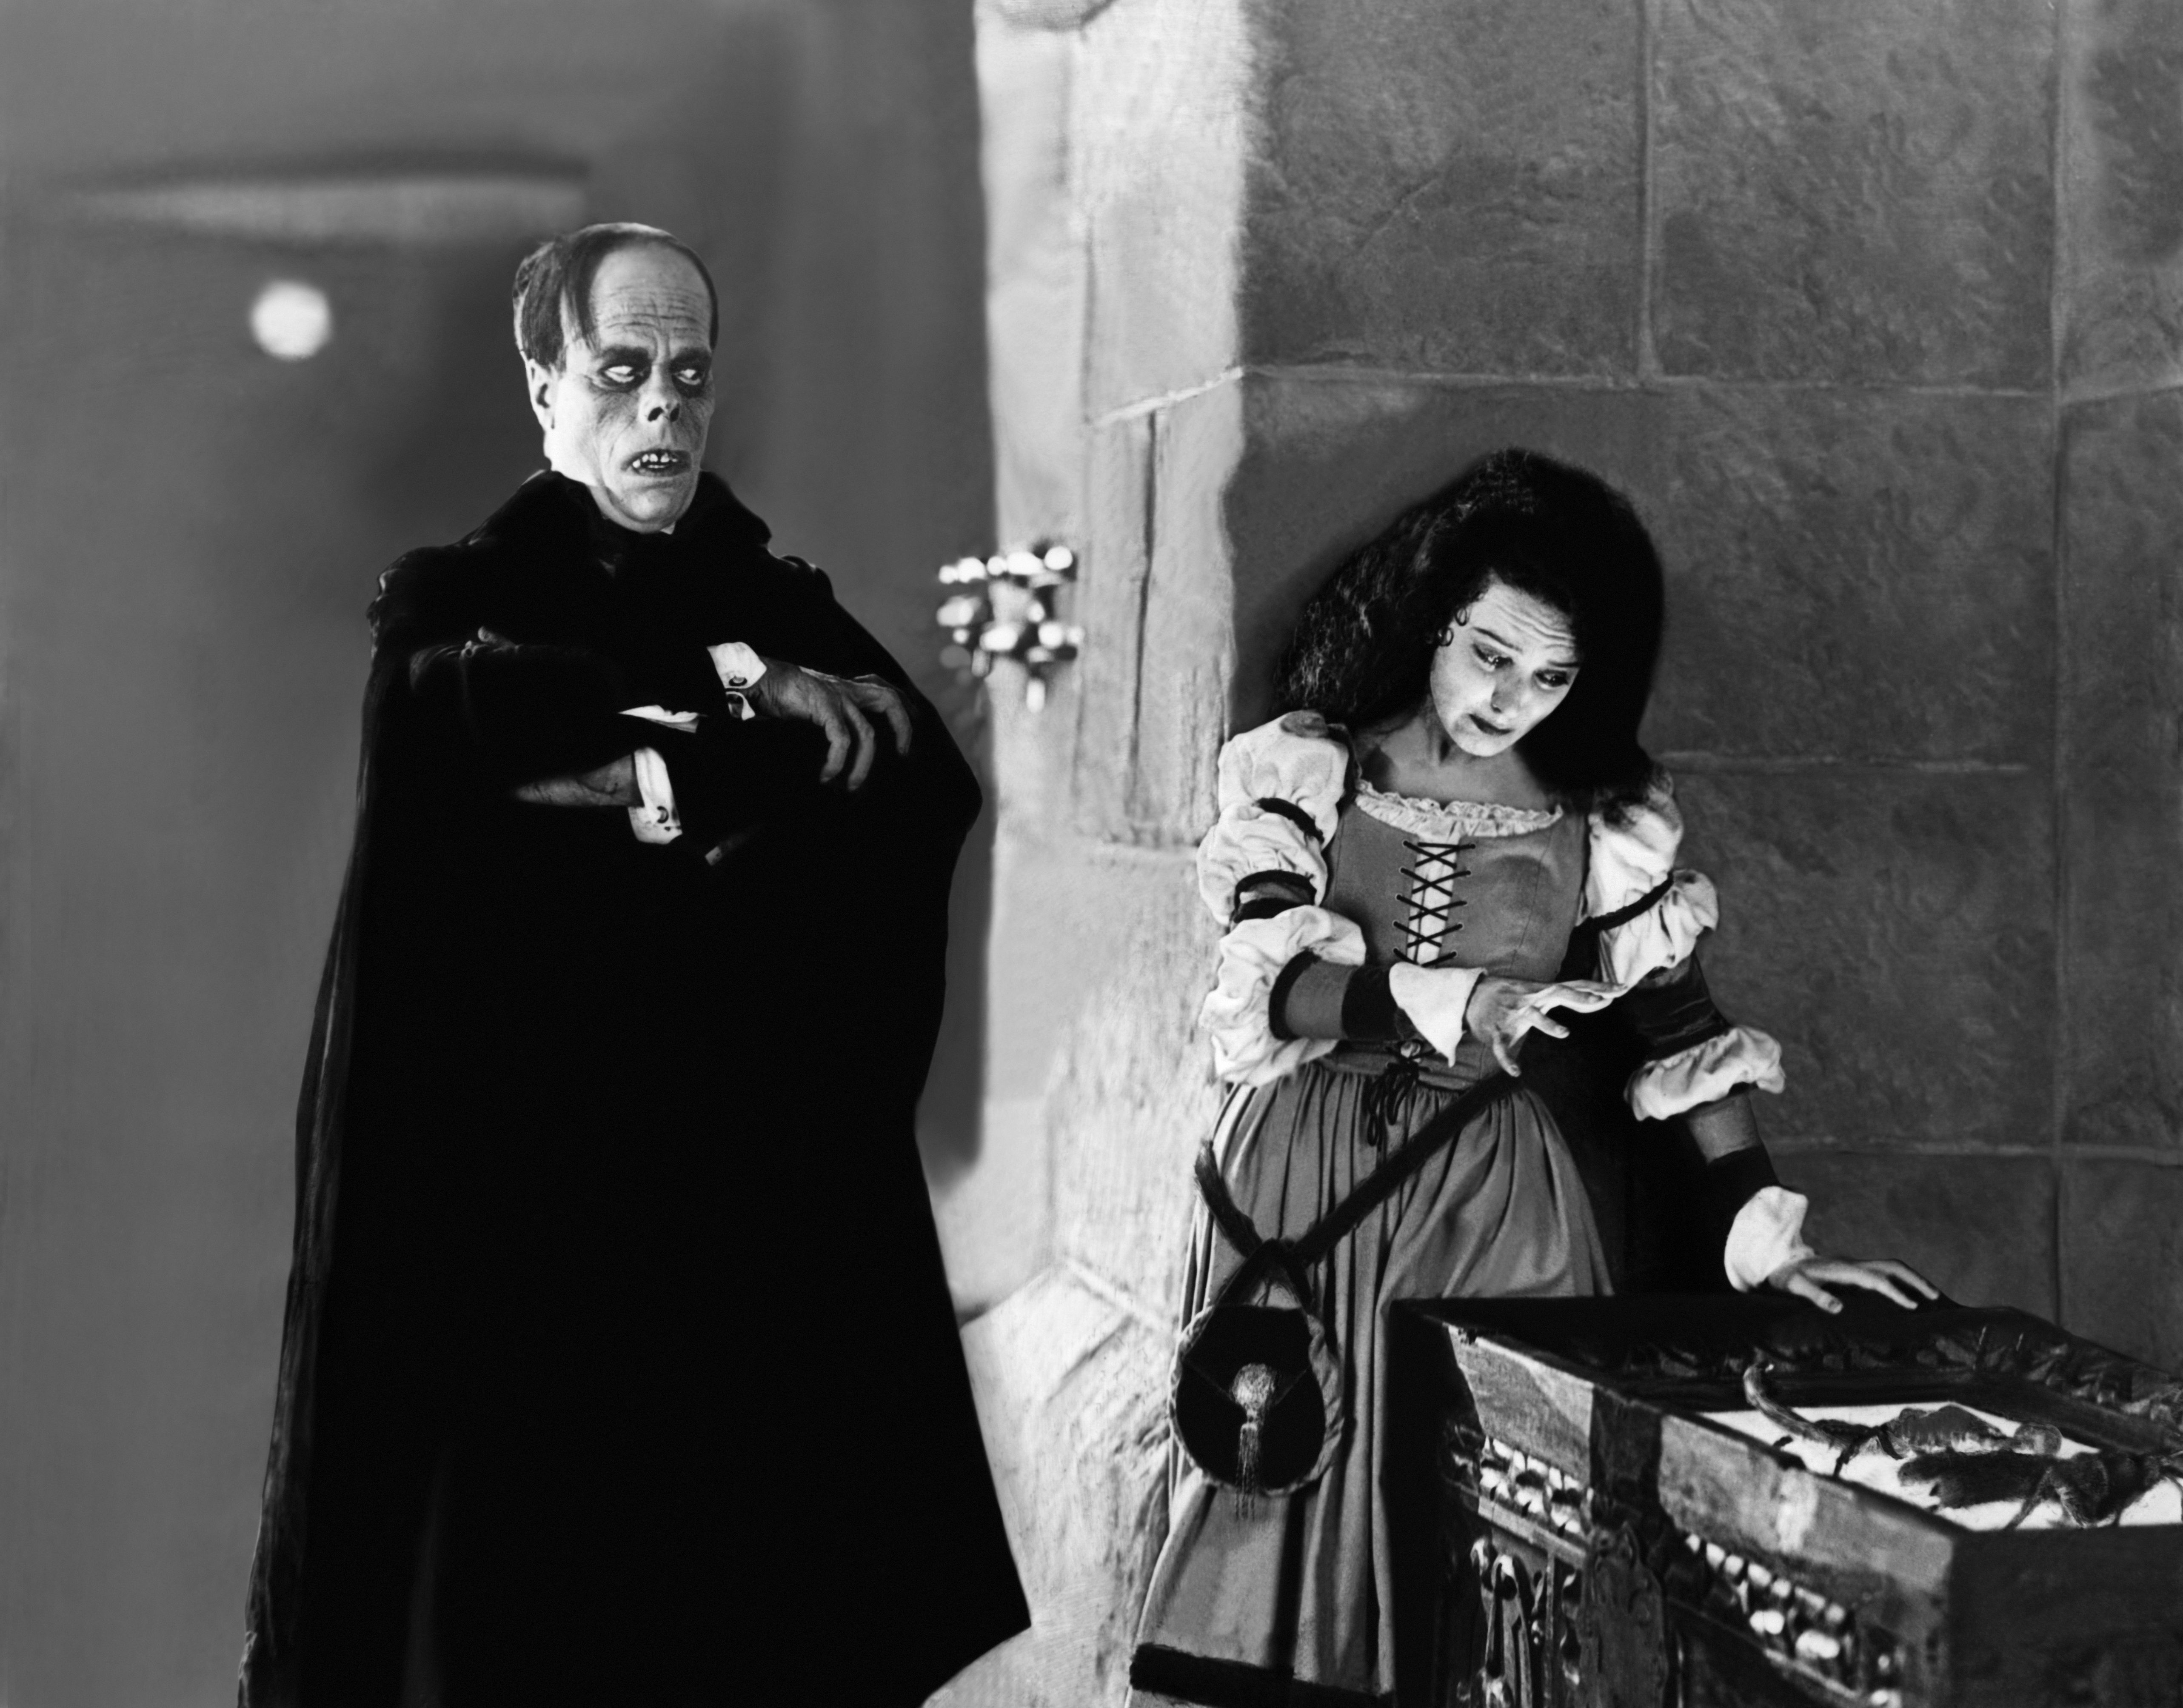 The History of Classic Universal Monsters Movies